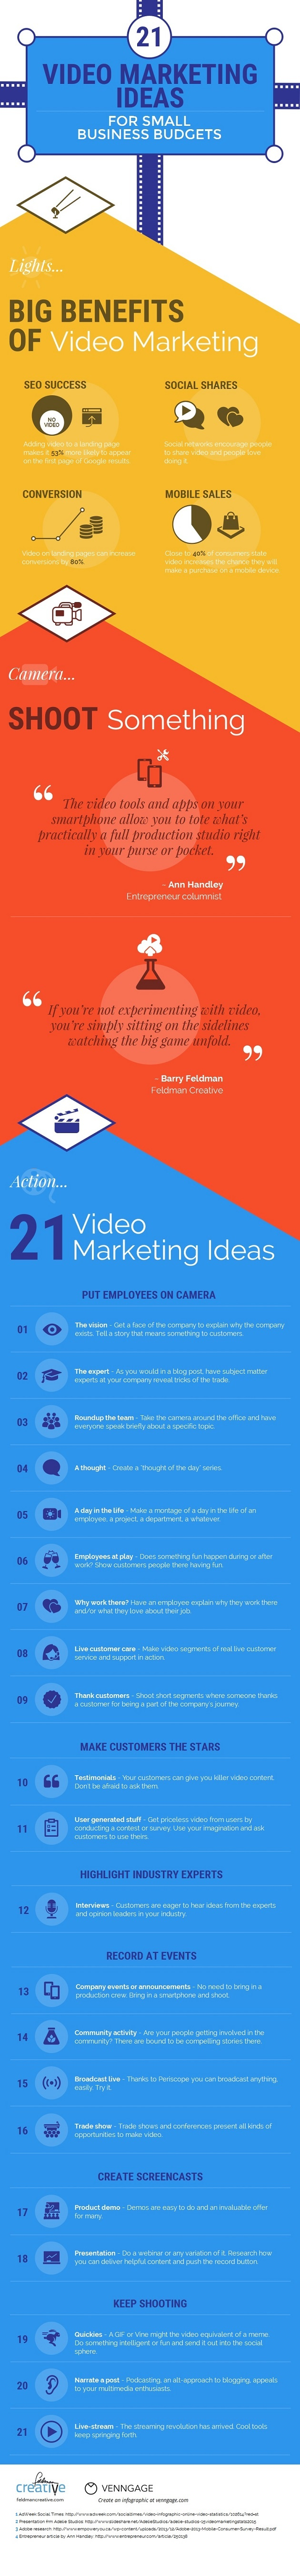 video marketing ideas for small business budgets